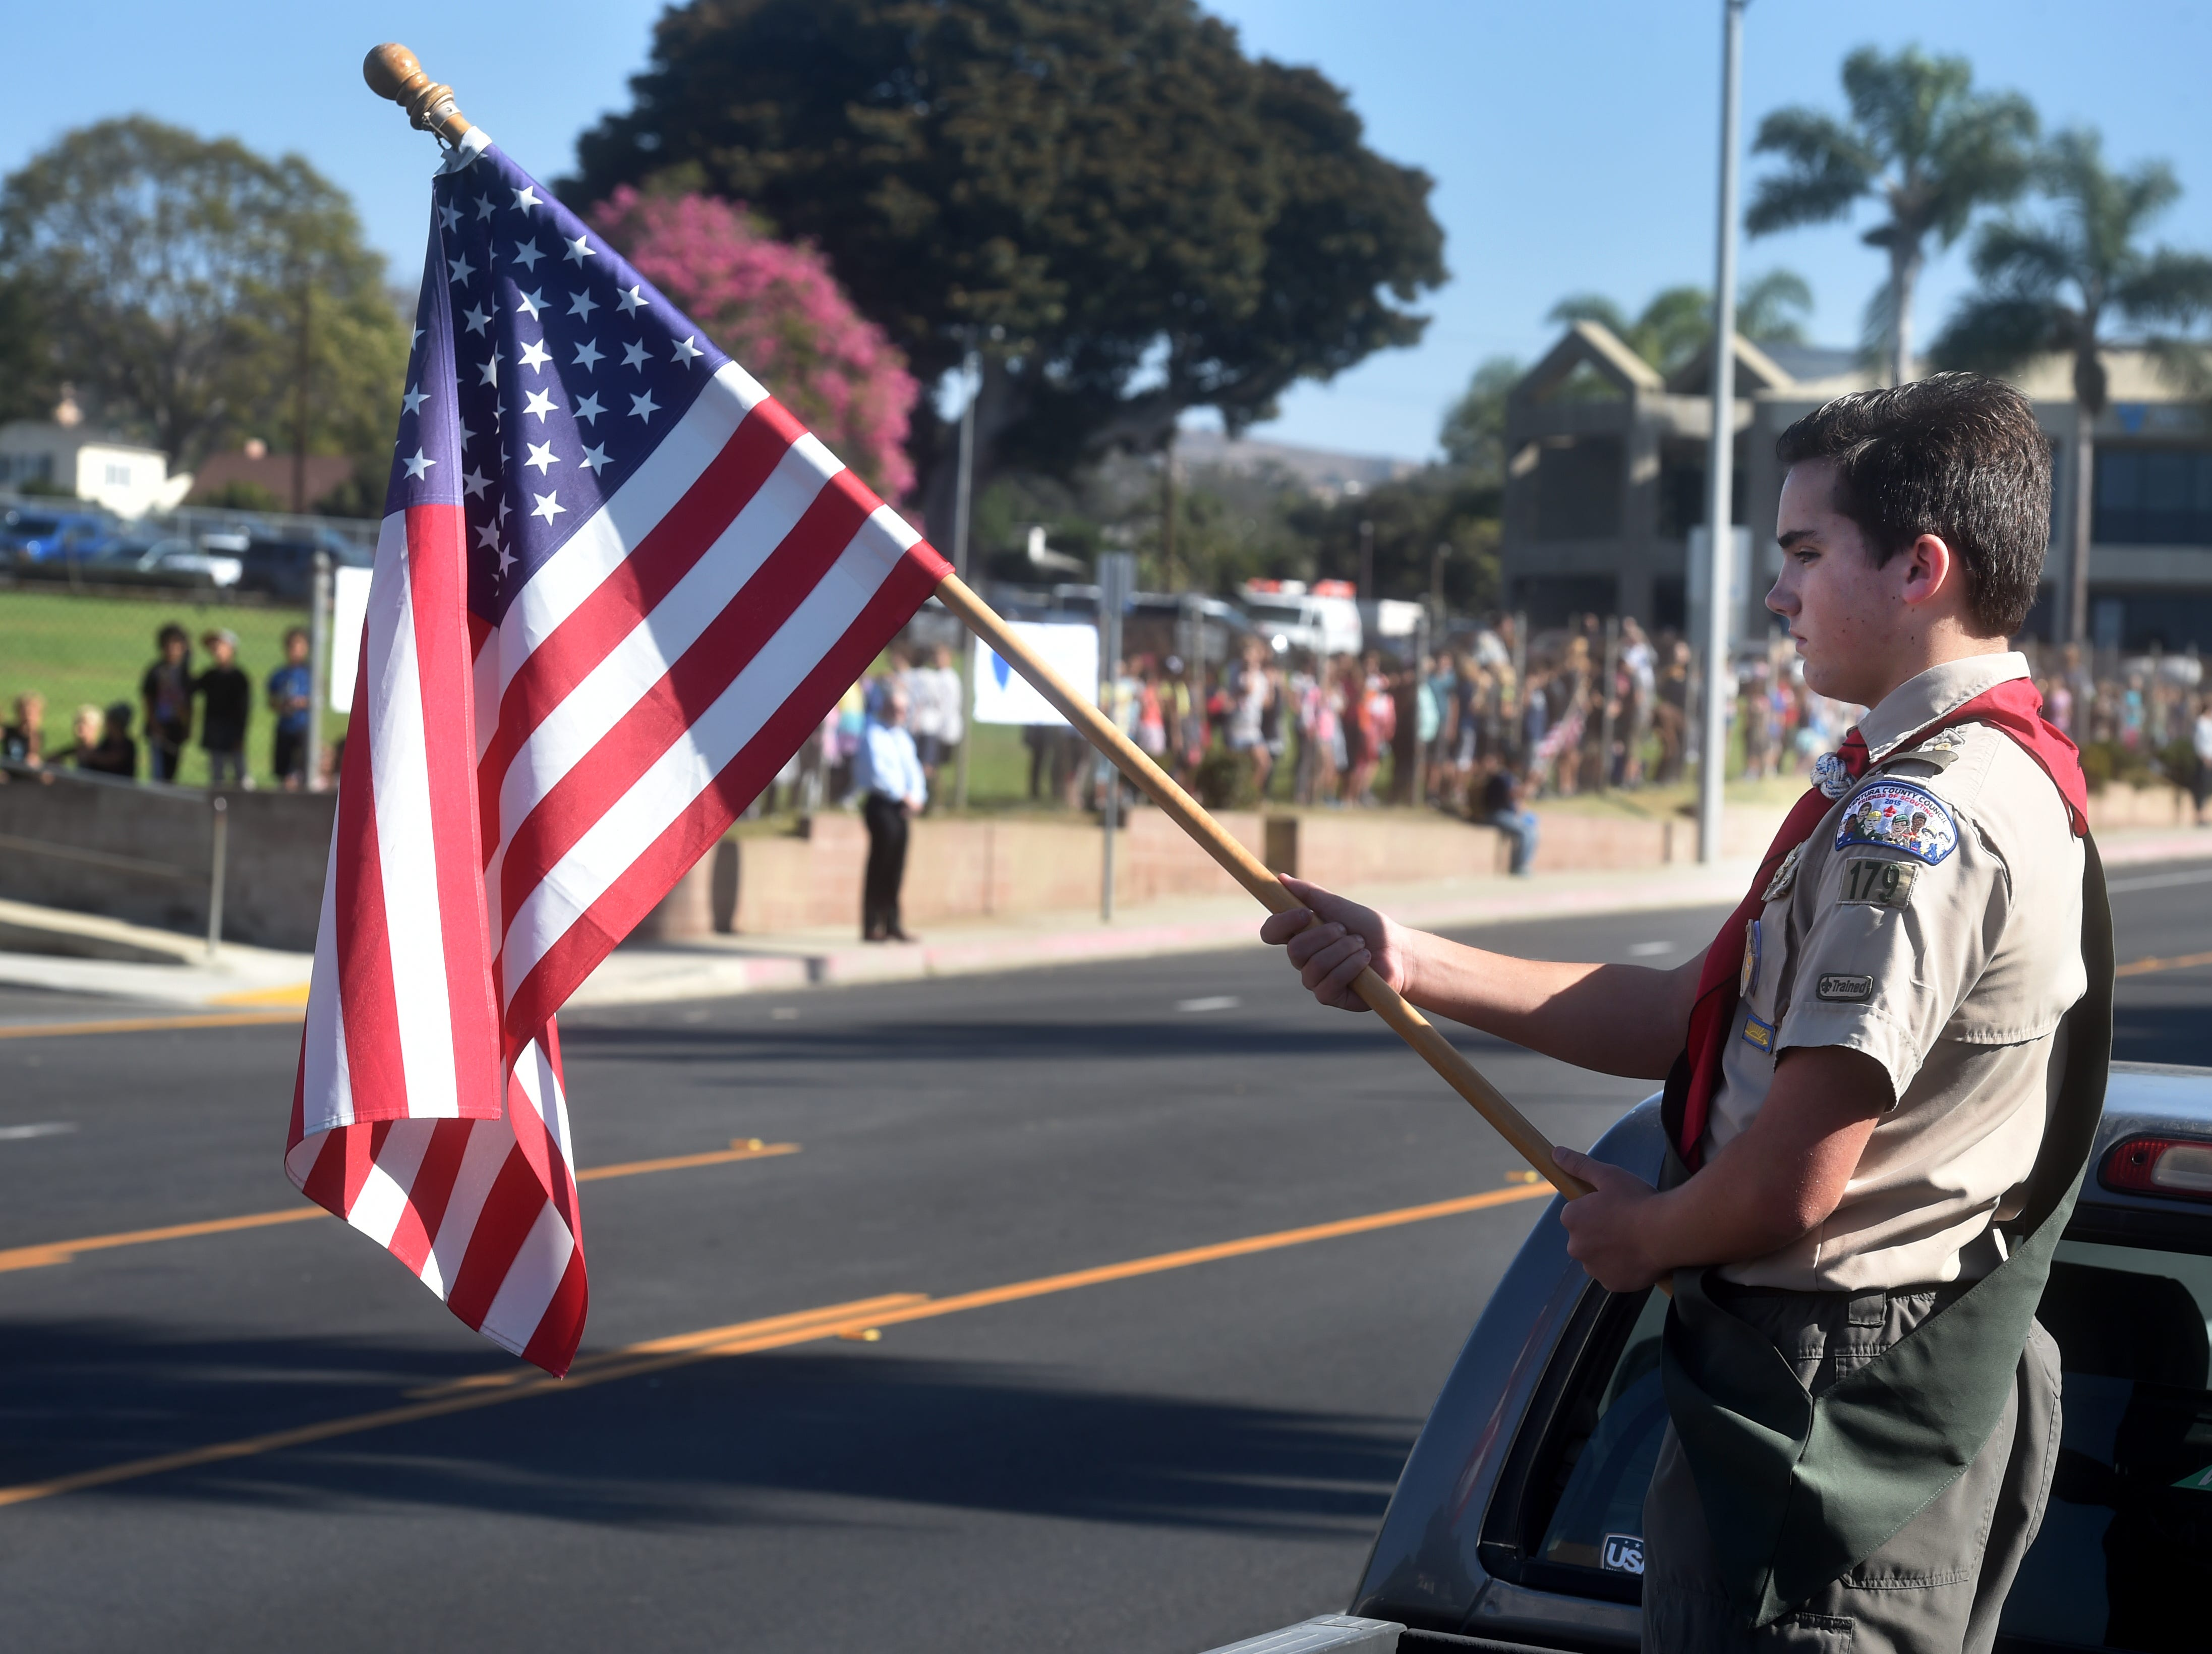 Grant Dullam, 15, of Ventura, holds up a flag across from Loma Vista Elementary as hundreds wait along Loma Vista Road for a procession carrying the body of Ventura County Sheriff Sgt. Ron Helus, who was one of 12 victims of the shooting in Thousand Oaks late Wednesday.